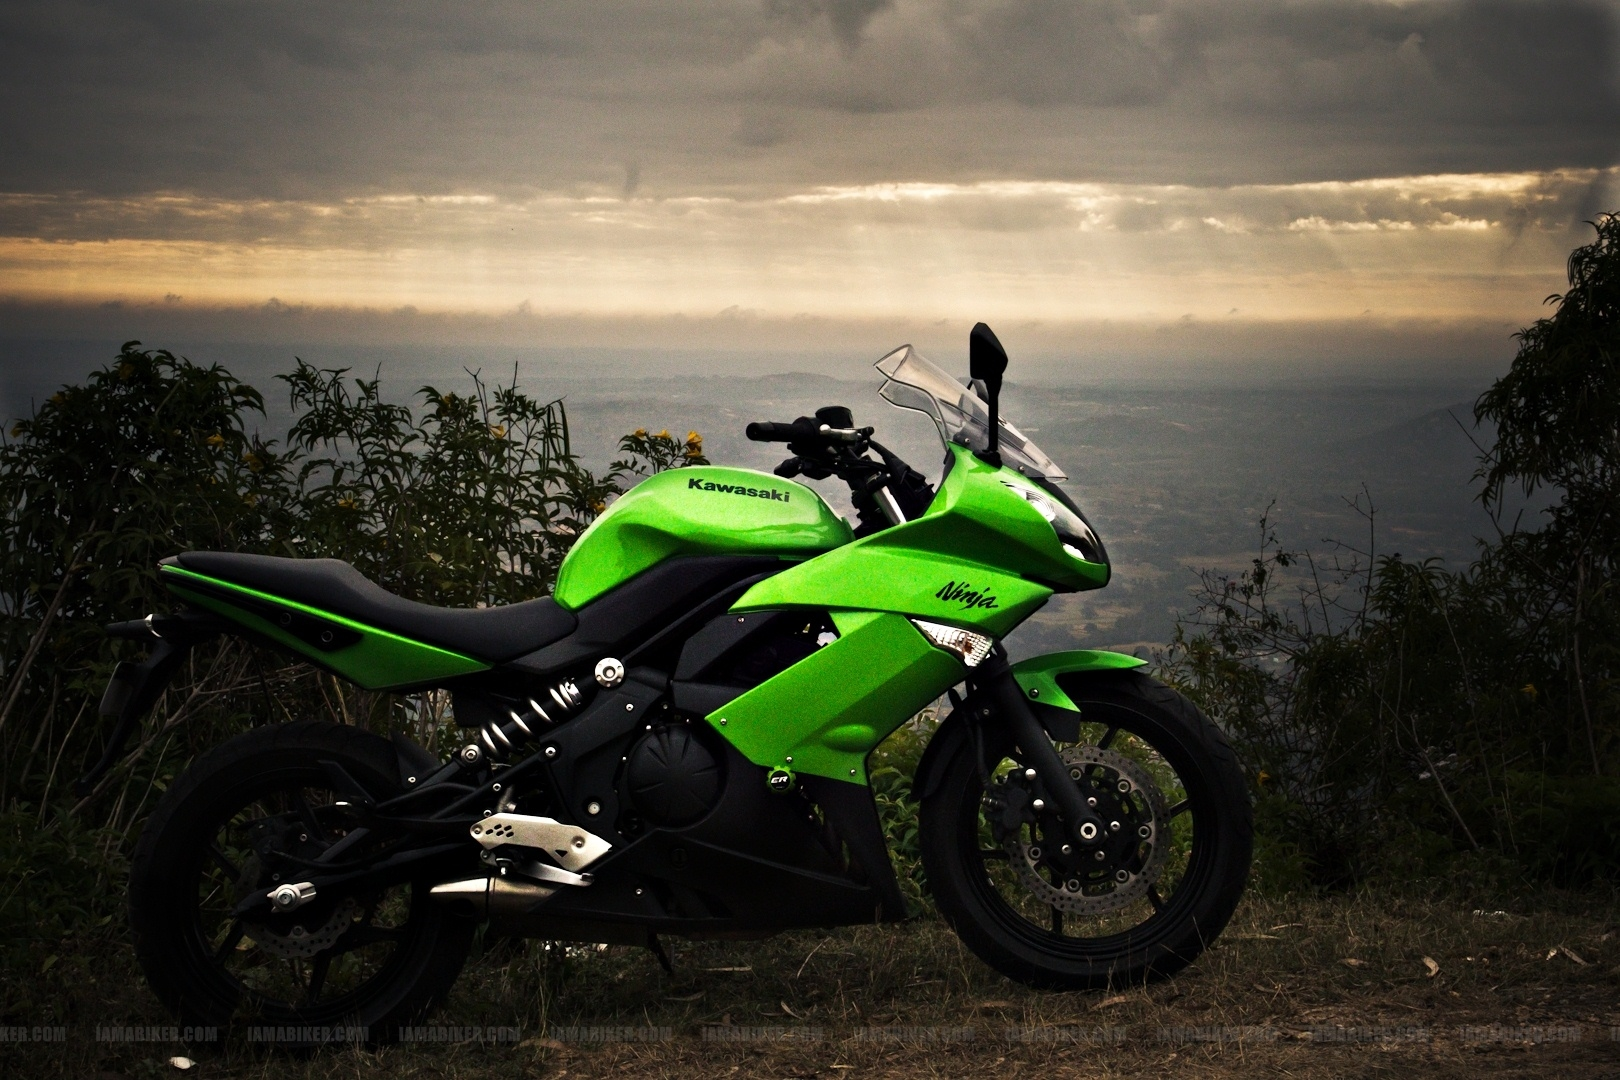 Kawasaki Ninja Wallpaper and Background Image  1620x1080